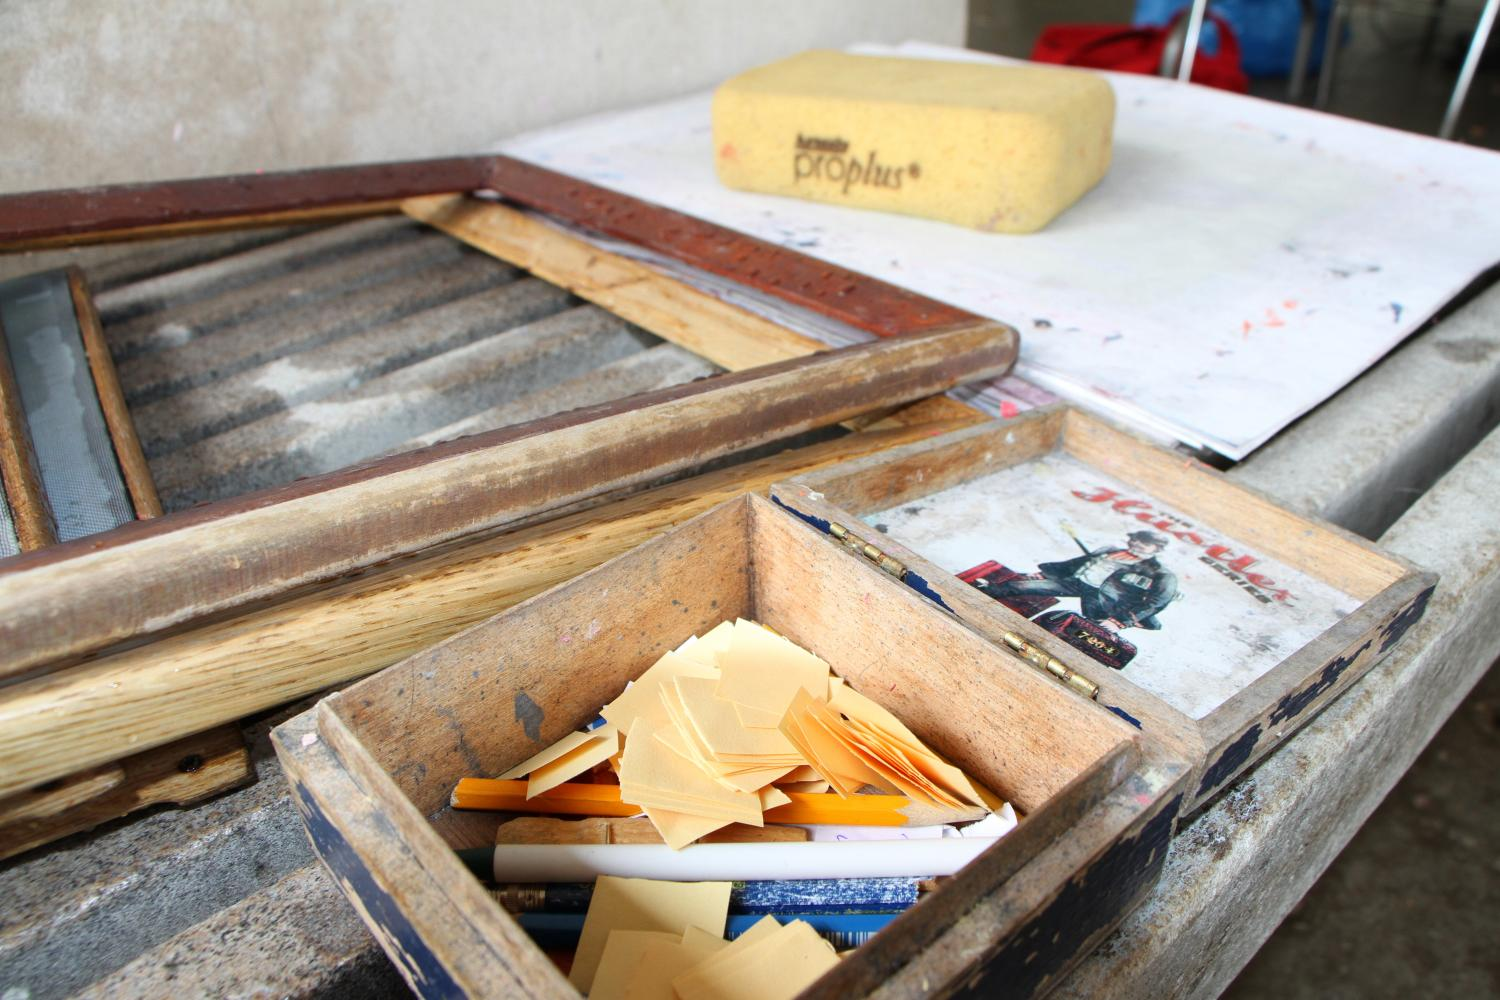 The Peace Paper Project makes use of the ancient art of paper making as a channel for personal expression and socio-cultural change. The project is worldwide, uniting people from all walks of life.